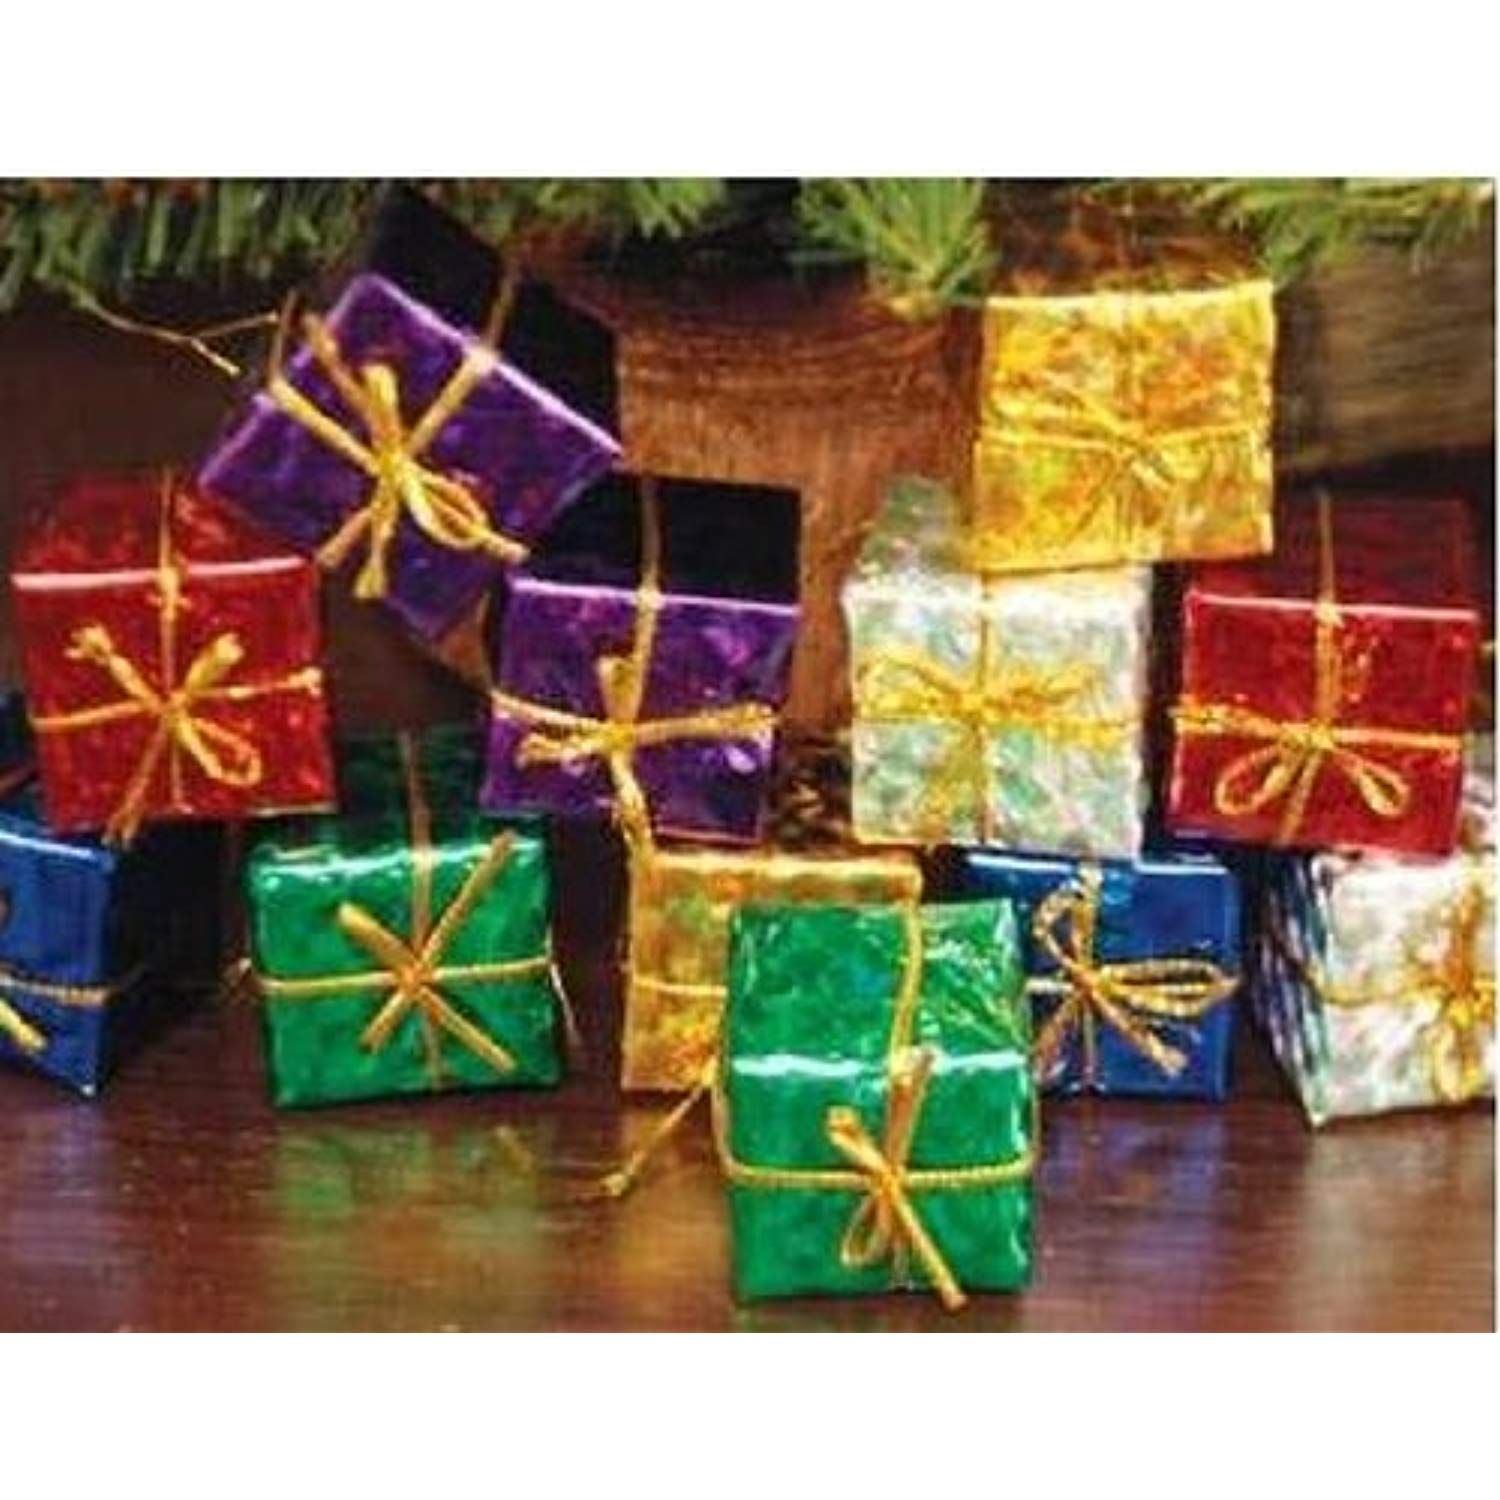 Lot of 48 Miniature Assorted Foil Gift Boxes for Christmas